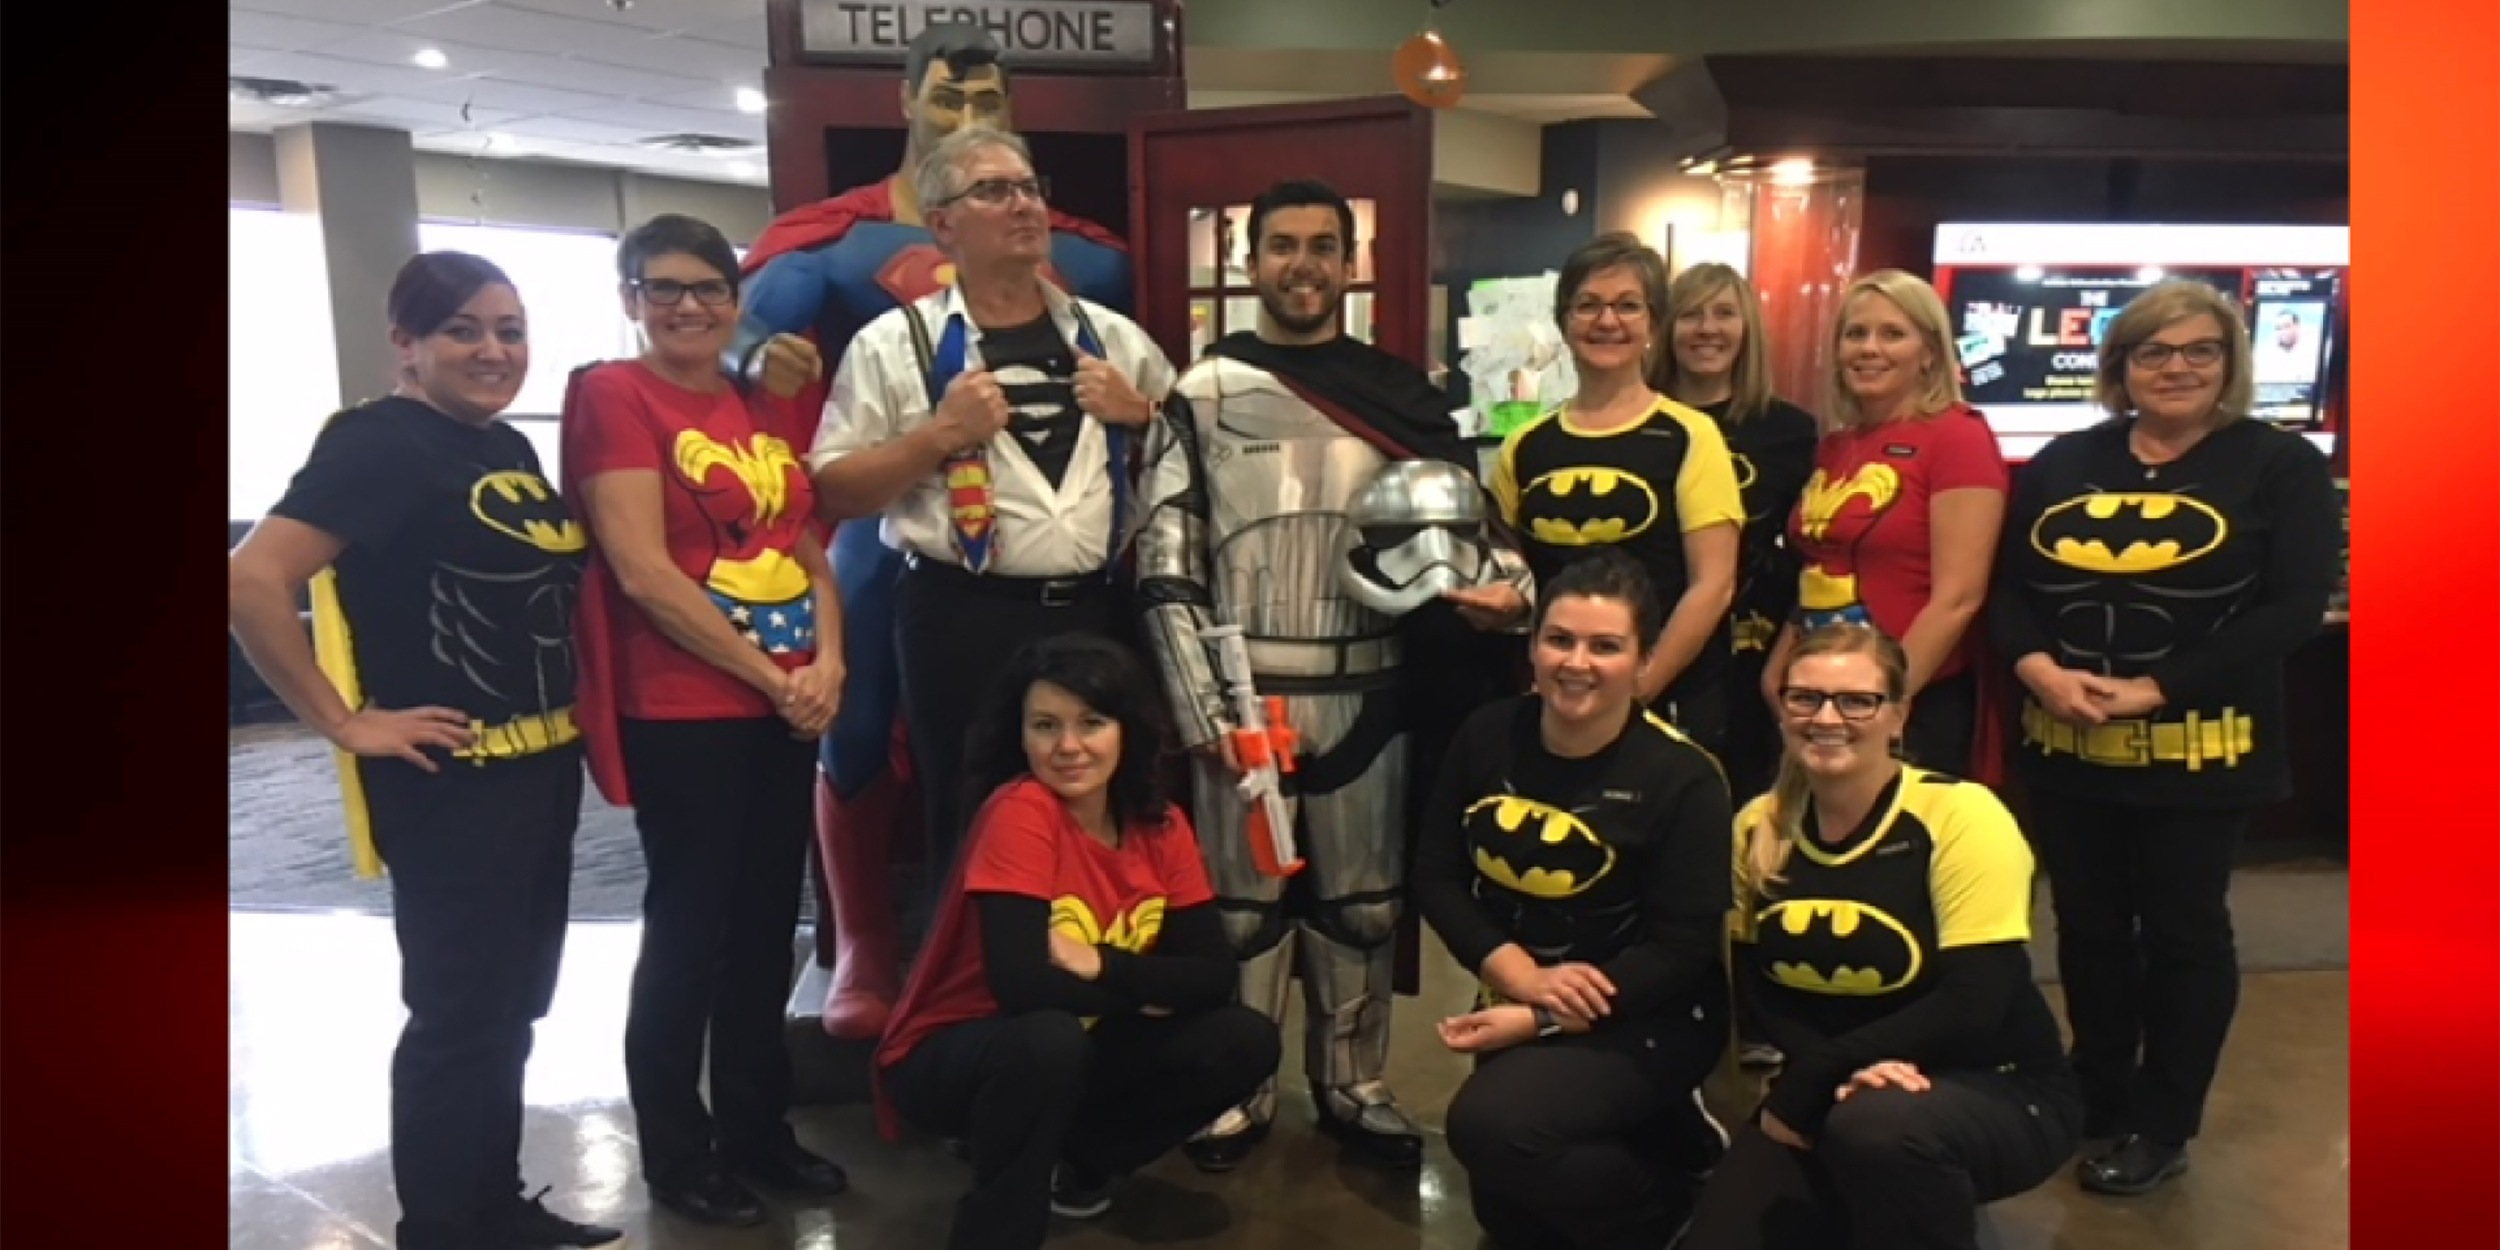 Halloween with Antosz Vincelli Orthodontics!